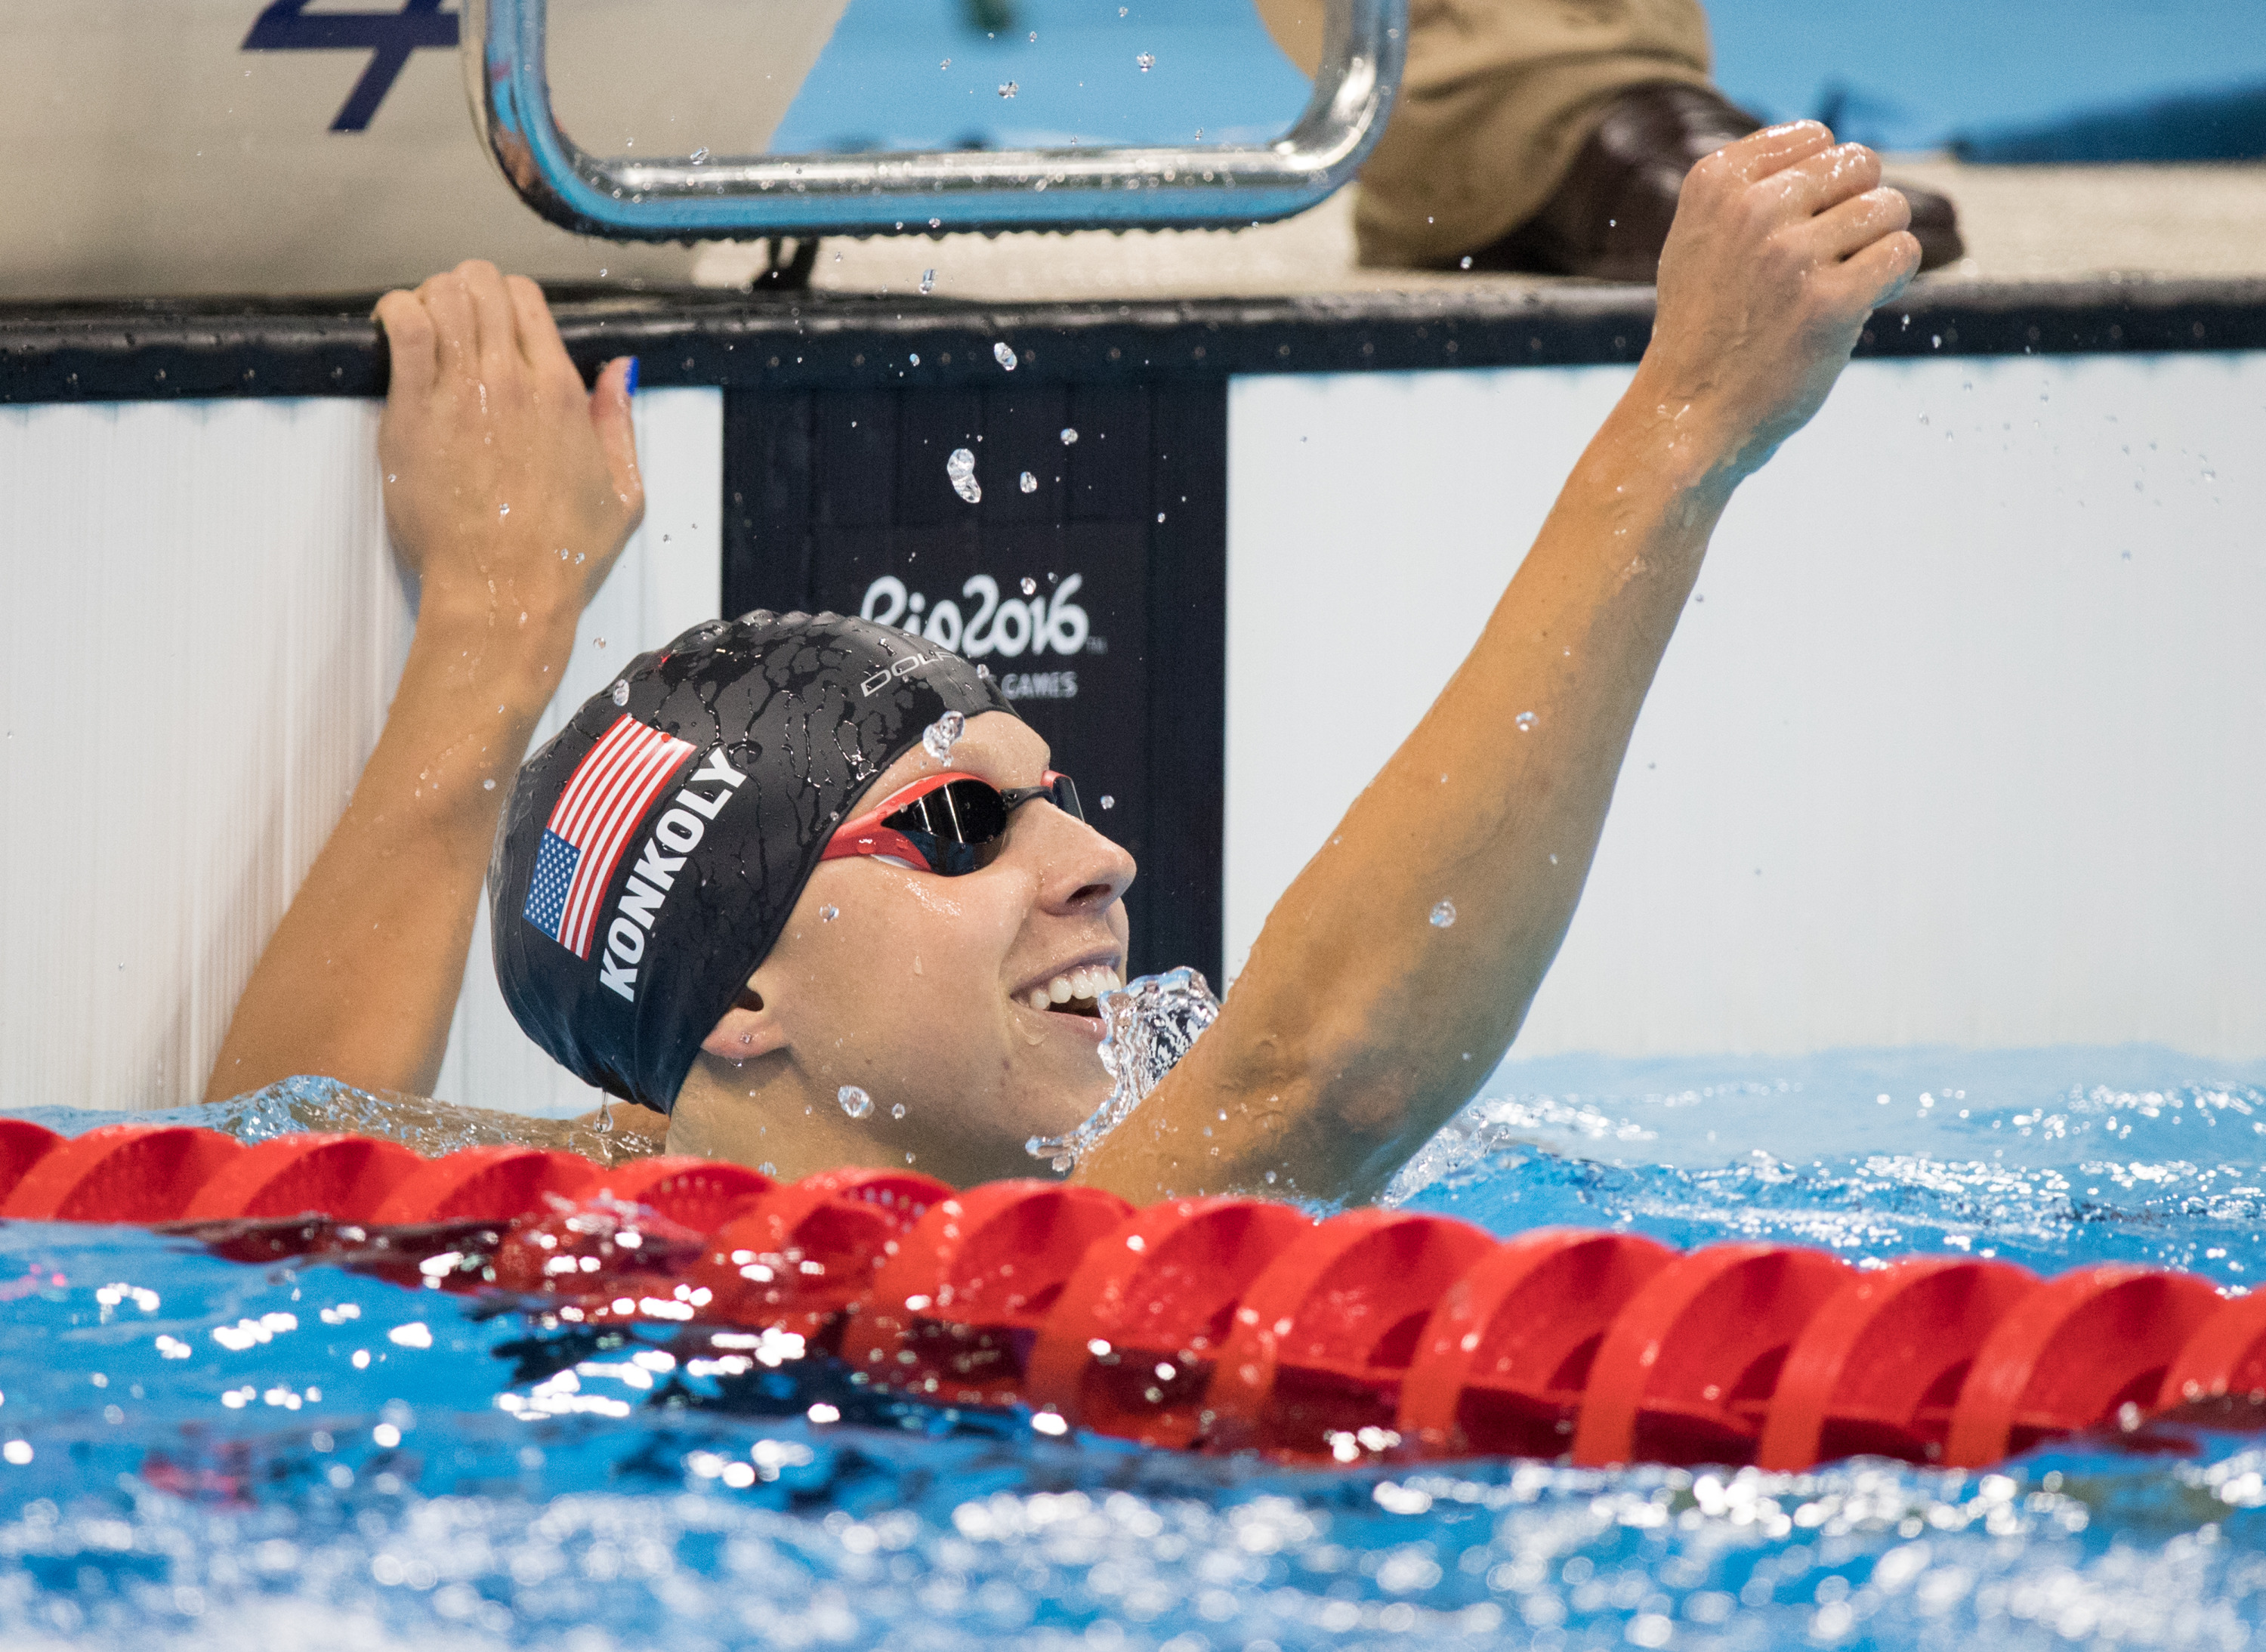 Konkoly set the S9 world record in the 100-meter freestyle on Monday in Rio.